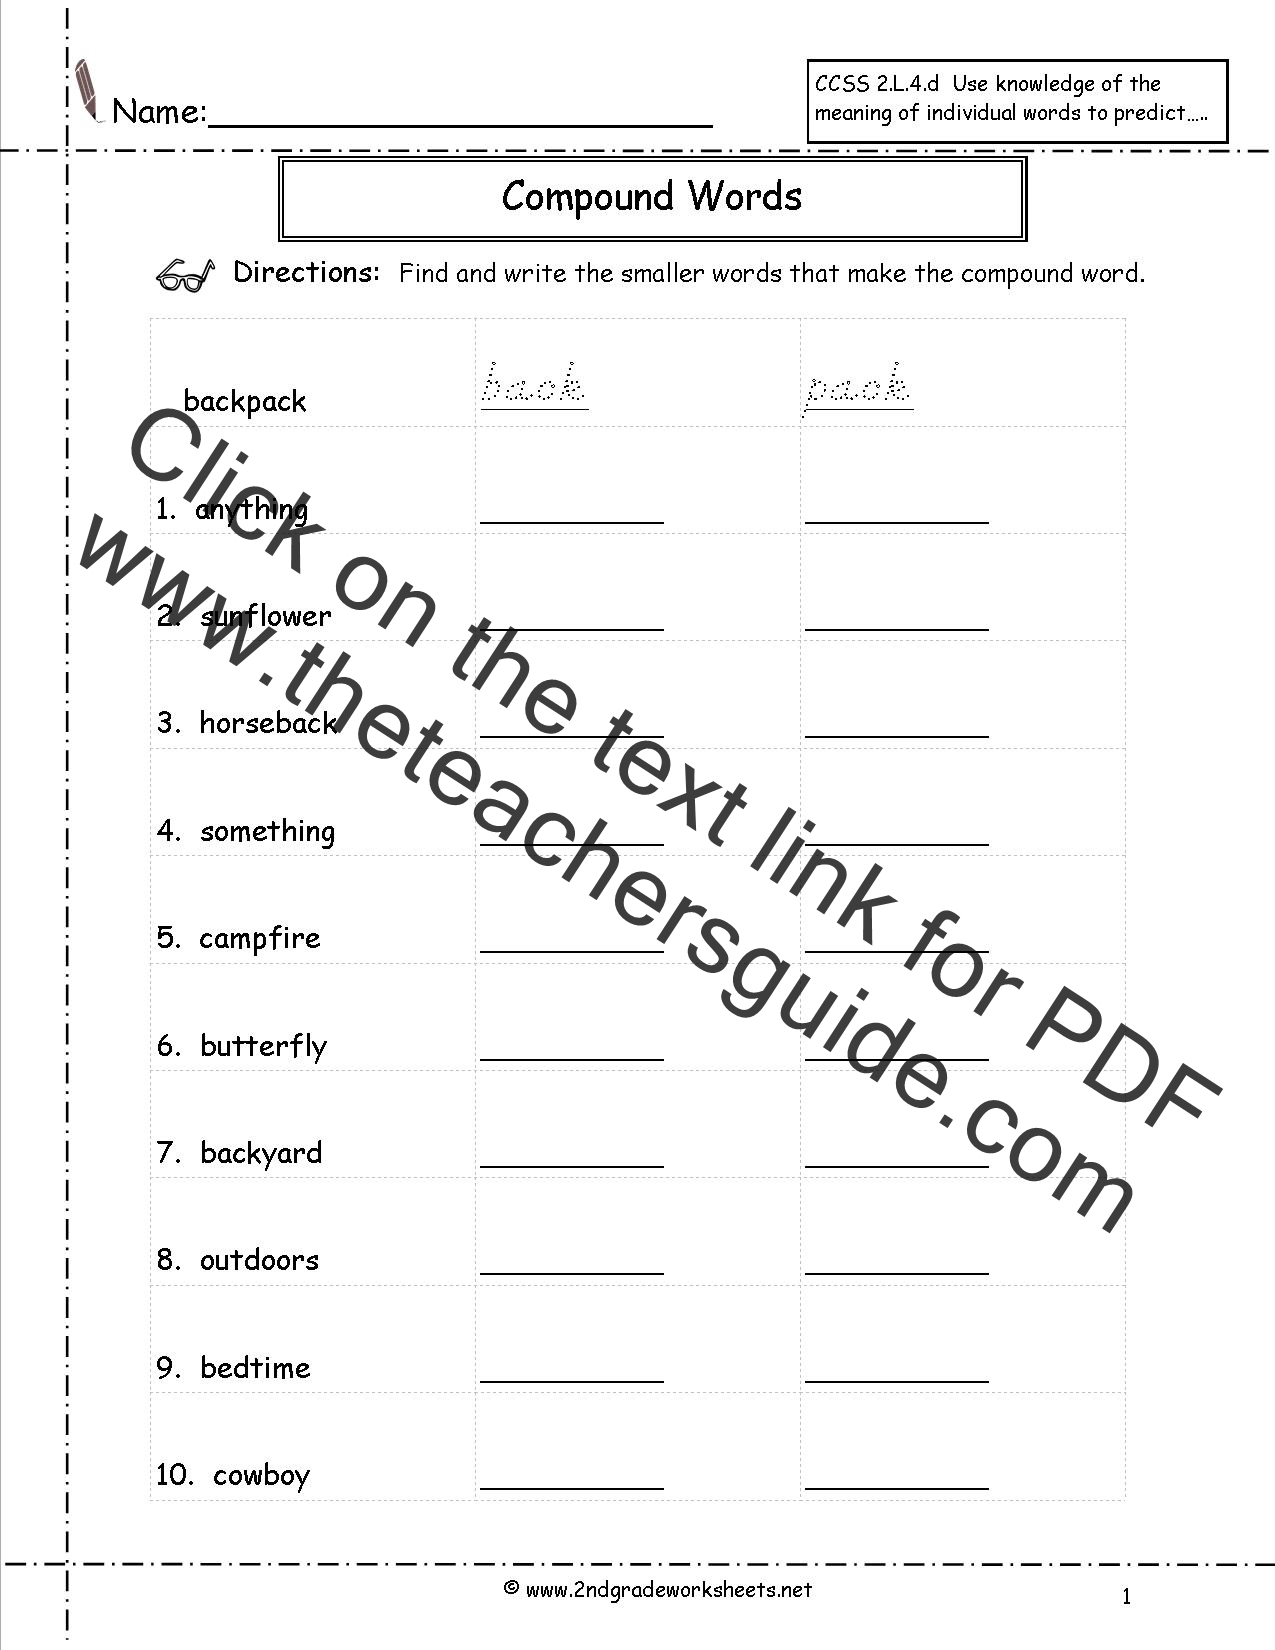 Worksheets 2nd Grade Ela Worksheets free languagegrammar worksheets and printouts compound words worksheets